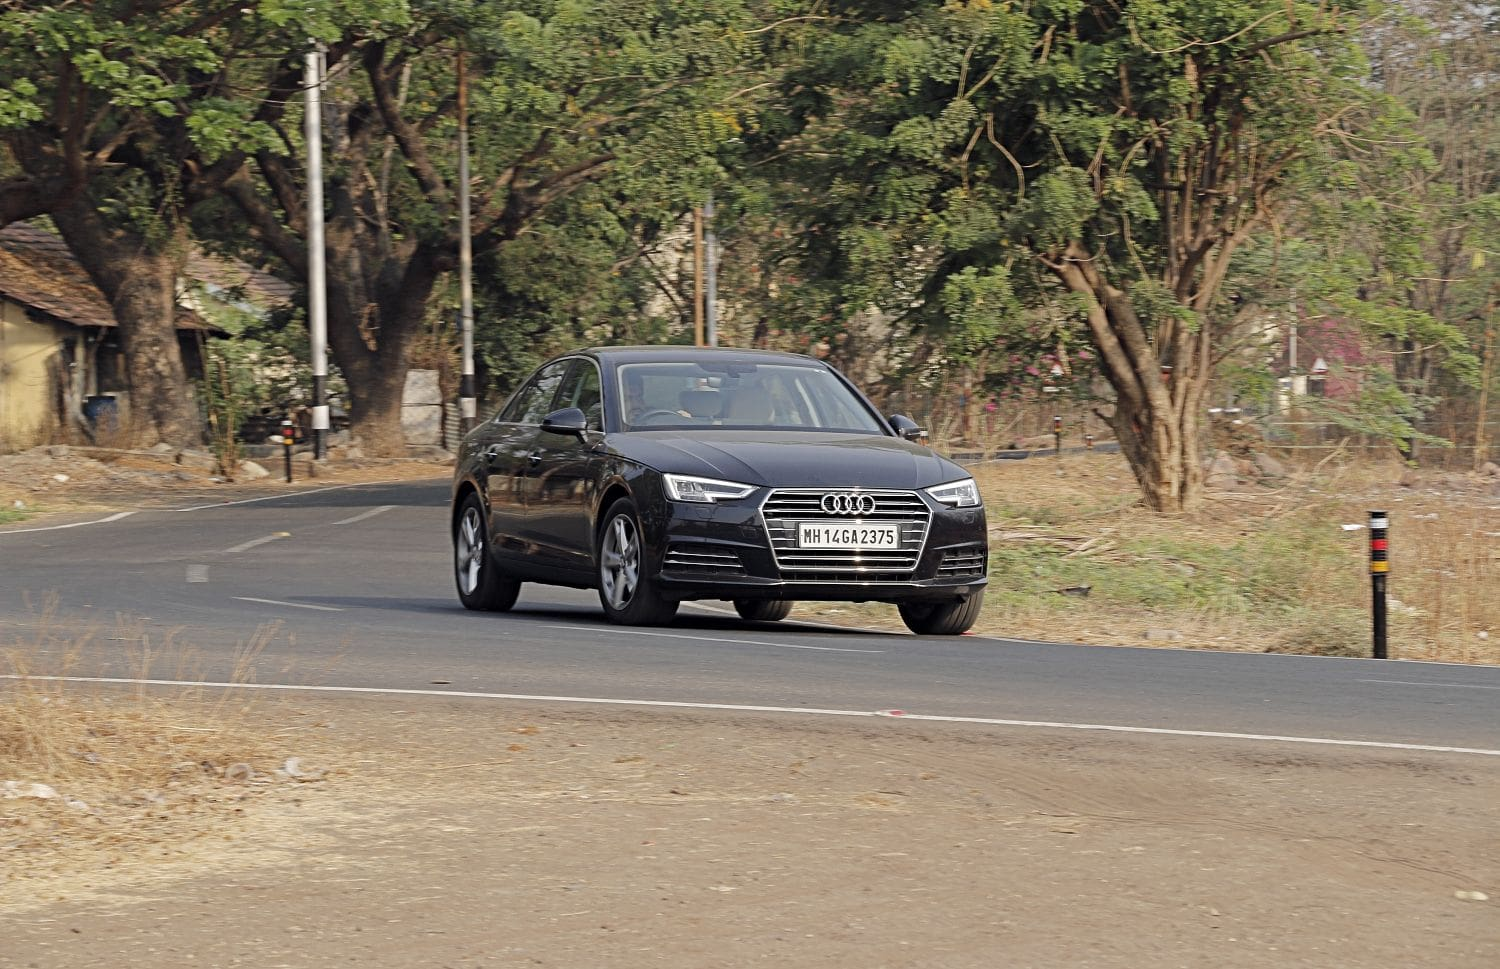 Audi A4 Diesel: Detailed Review